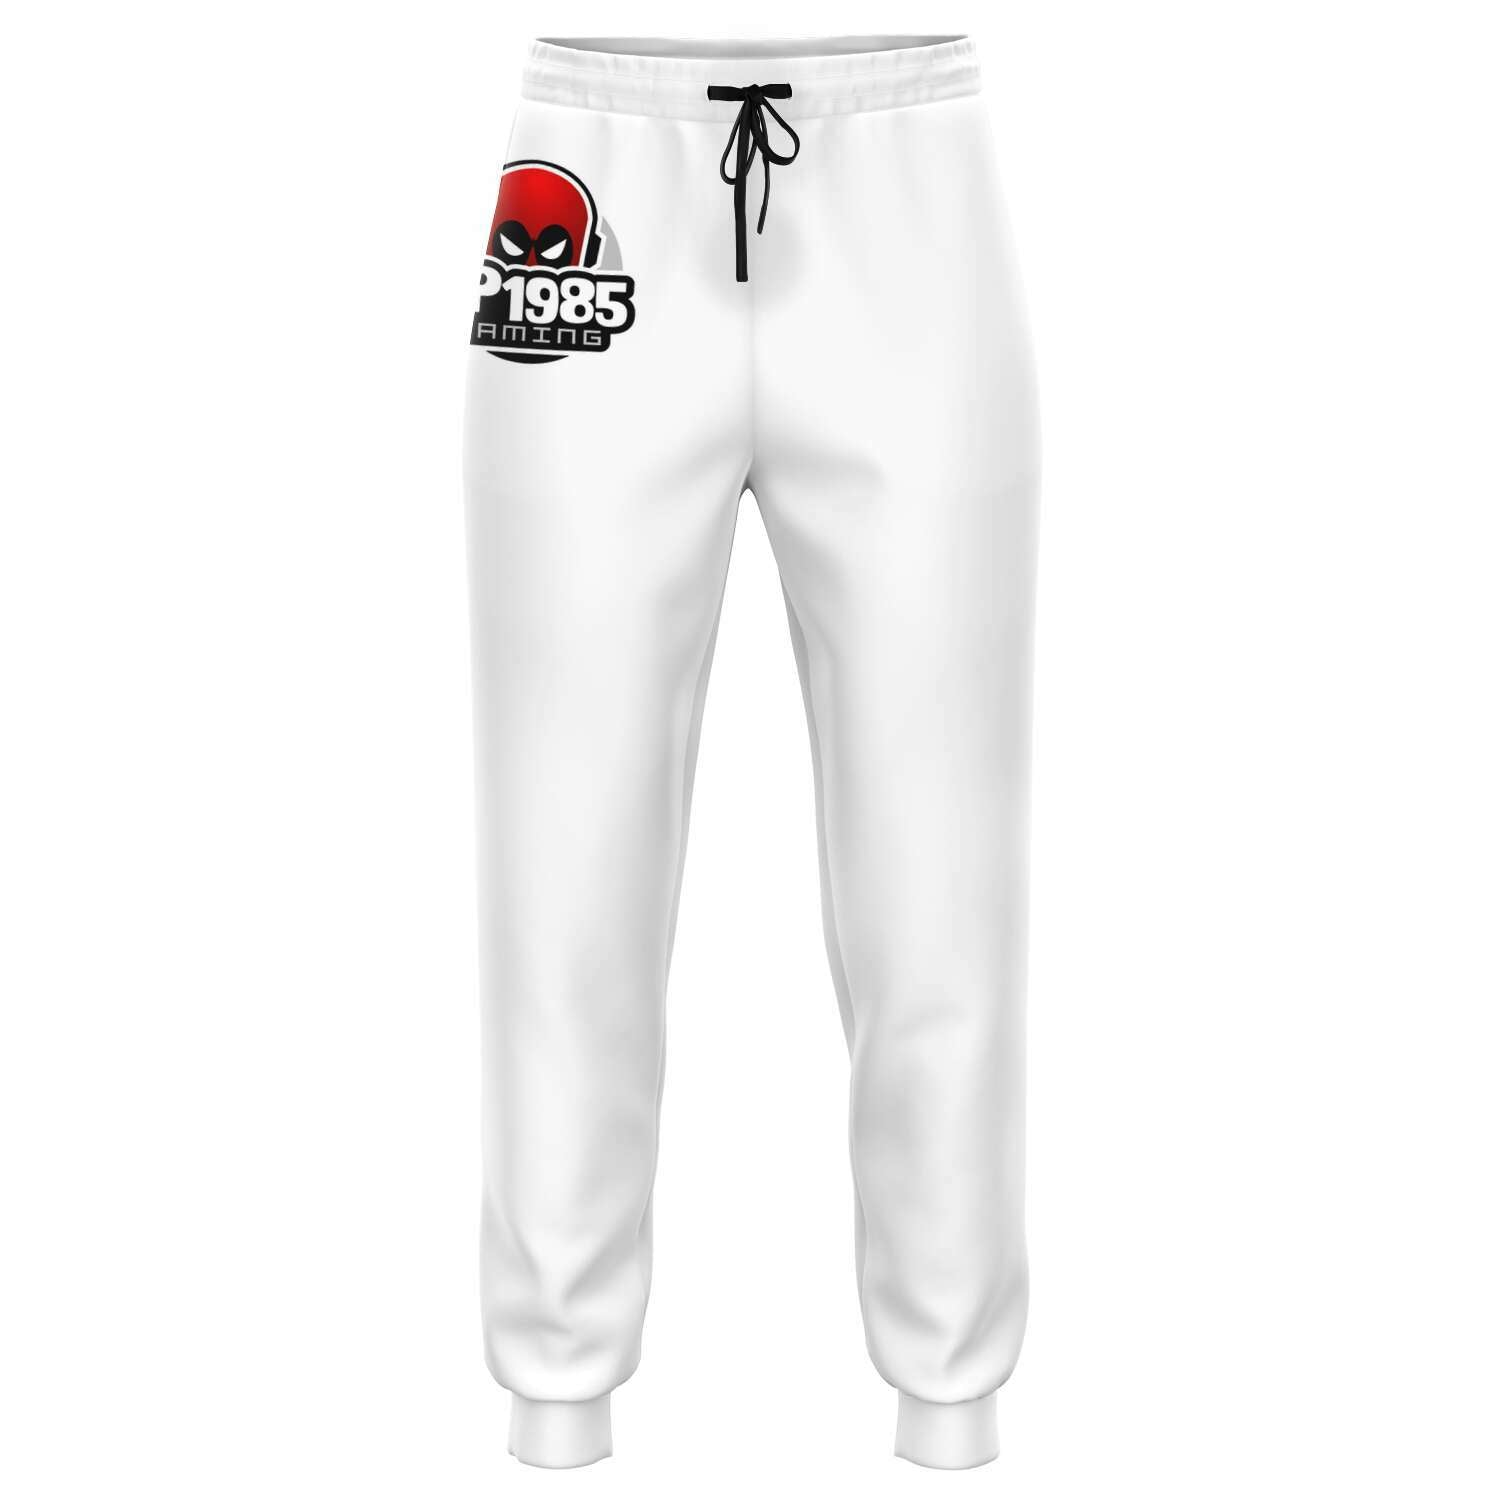 Deadpool1985 Unisex Joggers Subliminator